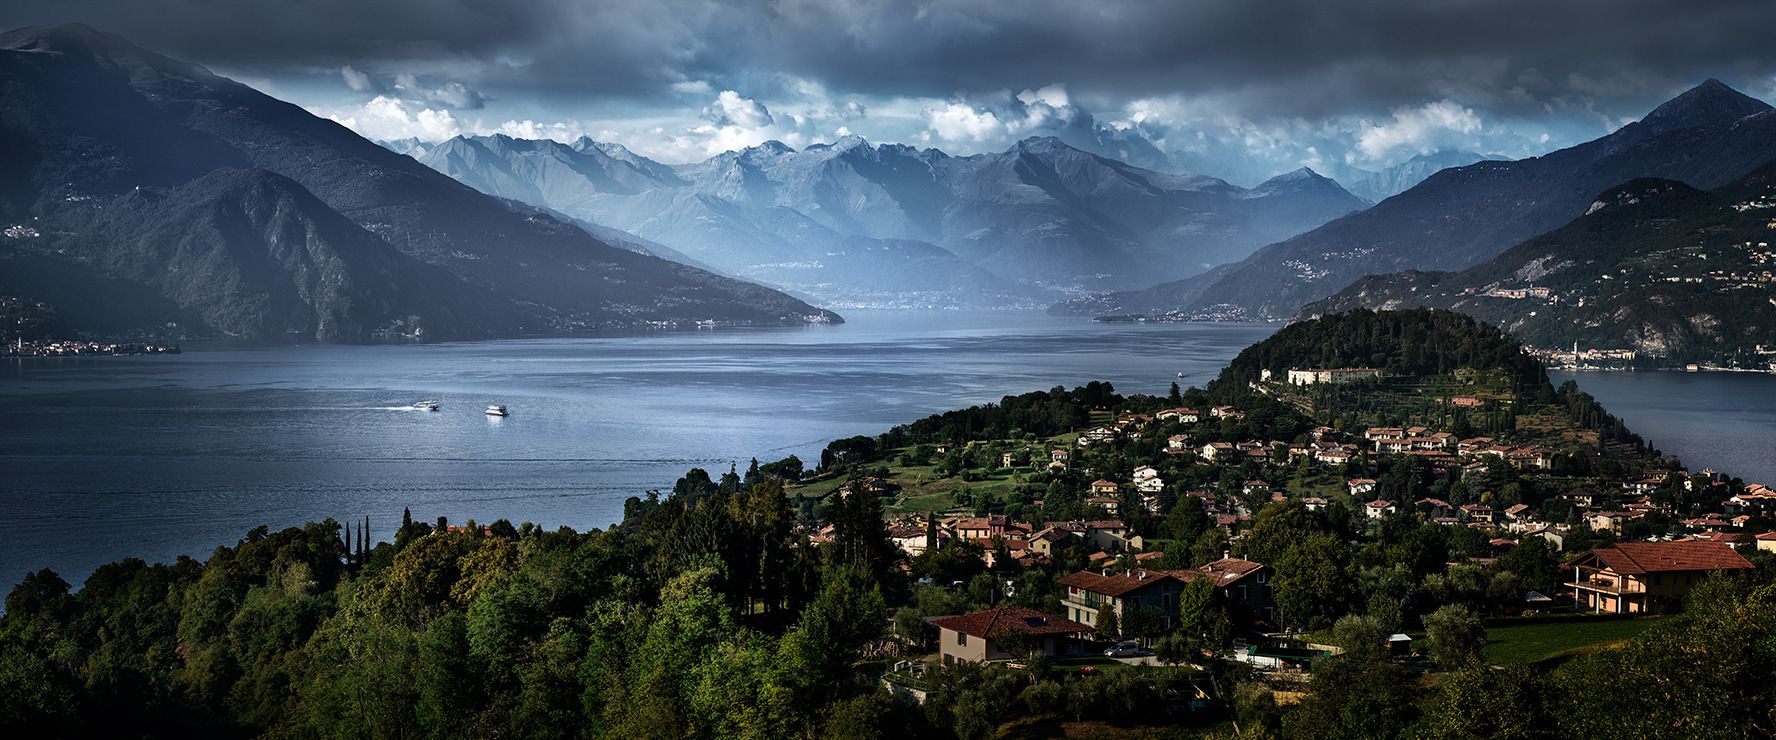 ESCAPE TO LAKE COMO, Archival Pigment Print